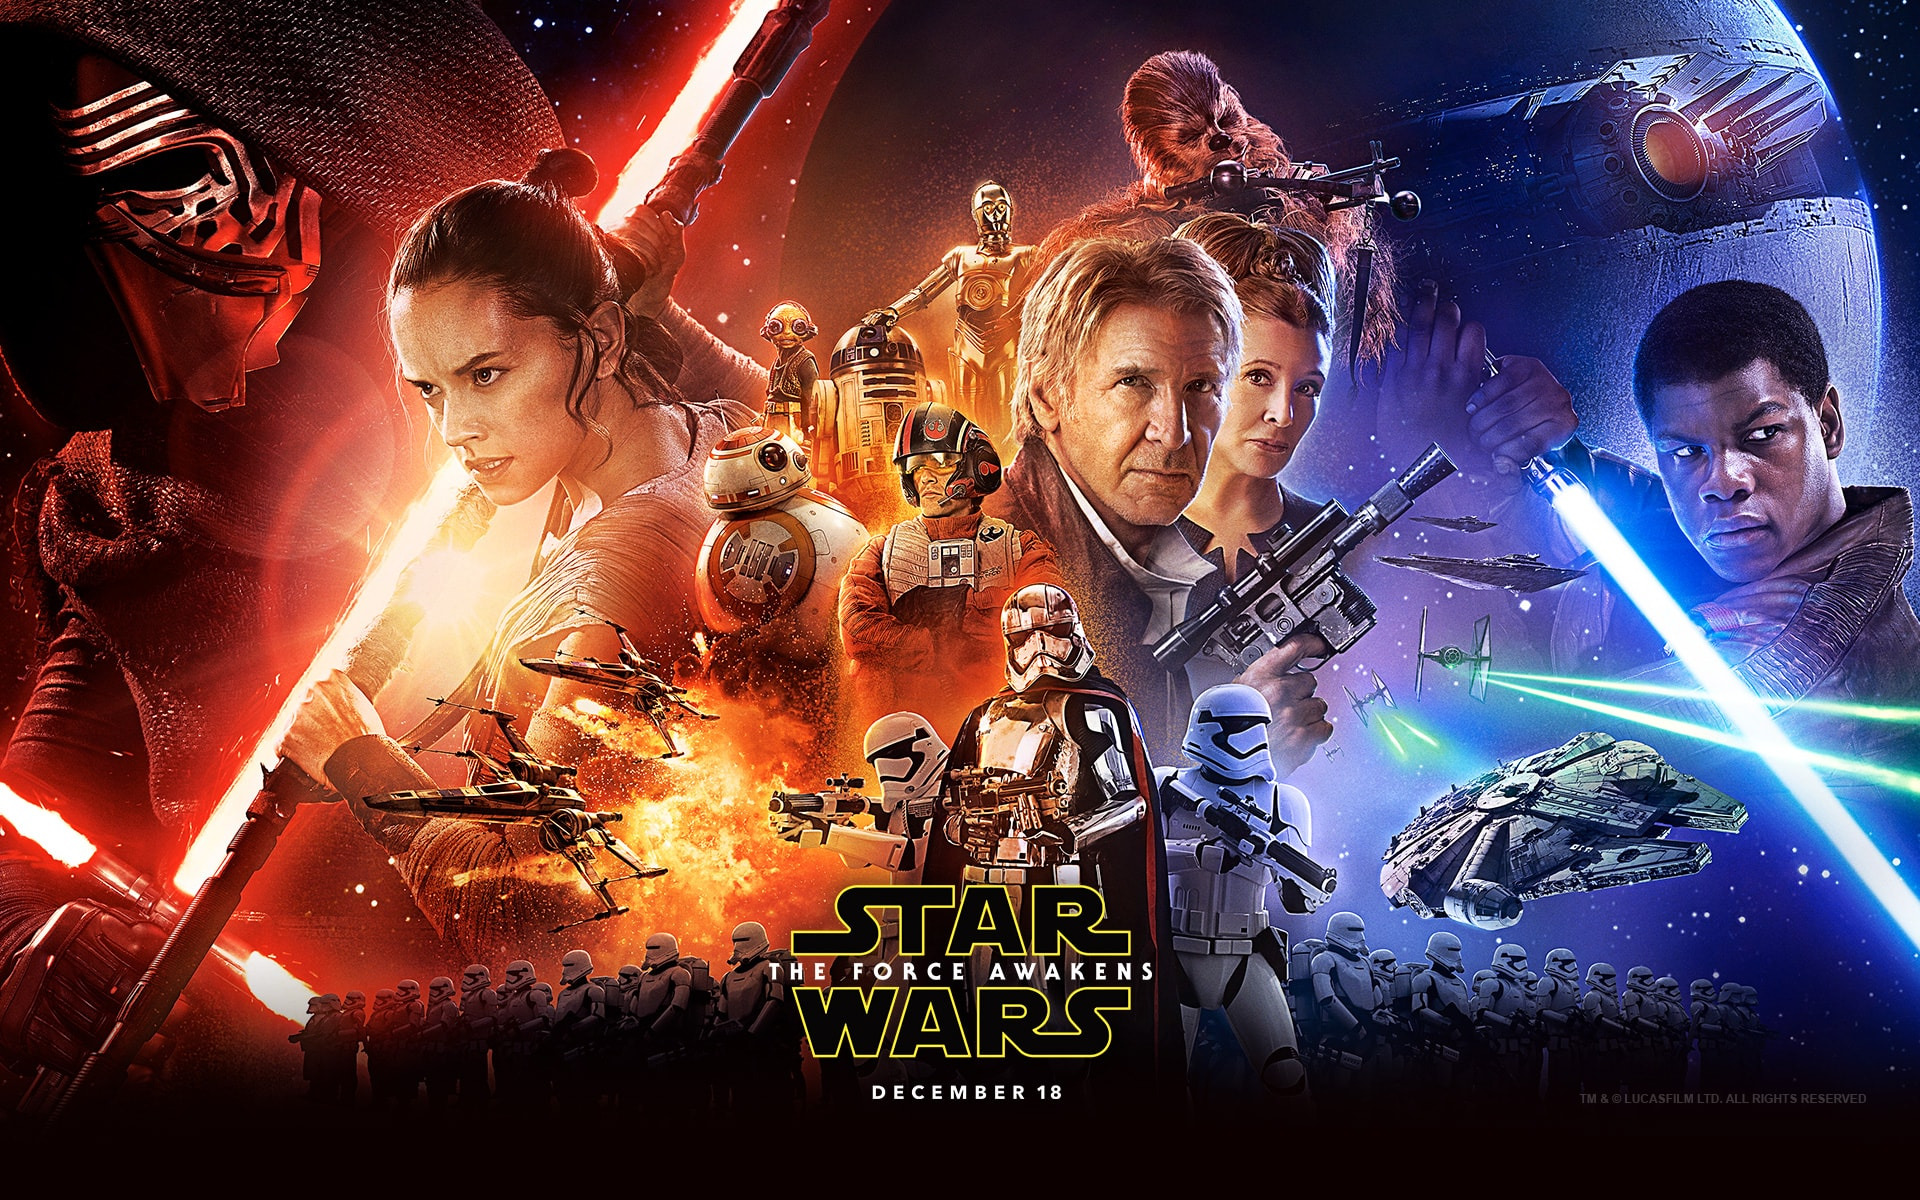 Star Wars Episode VII: The Force Awakens widescreen wallpapers